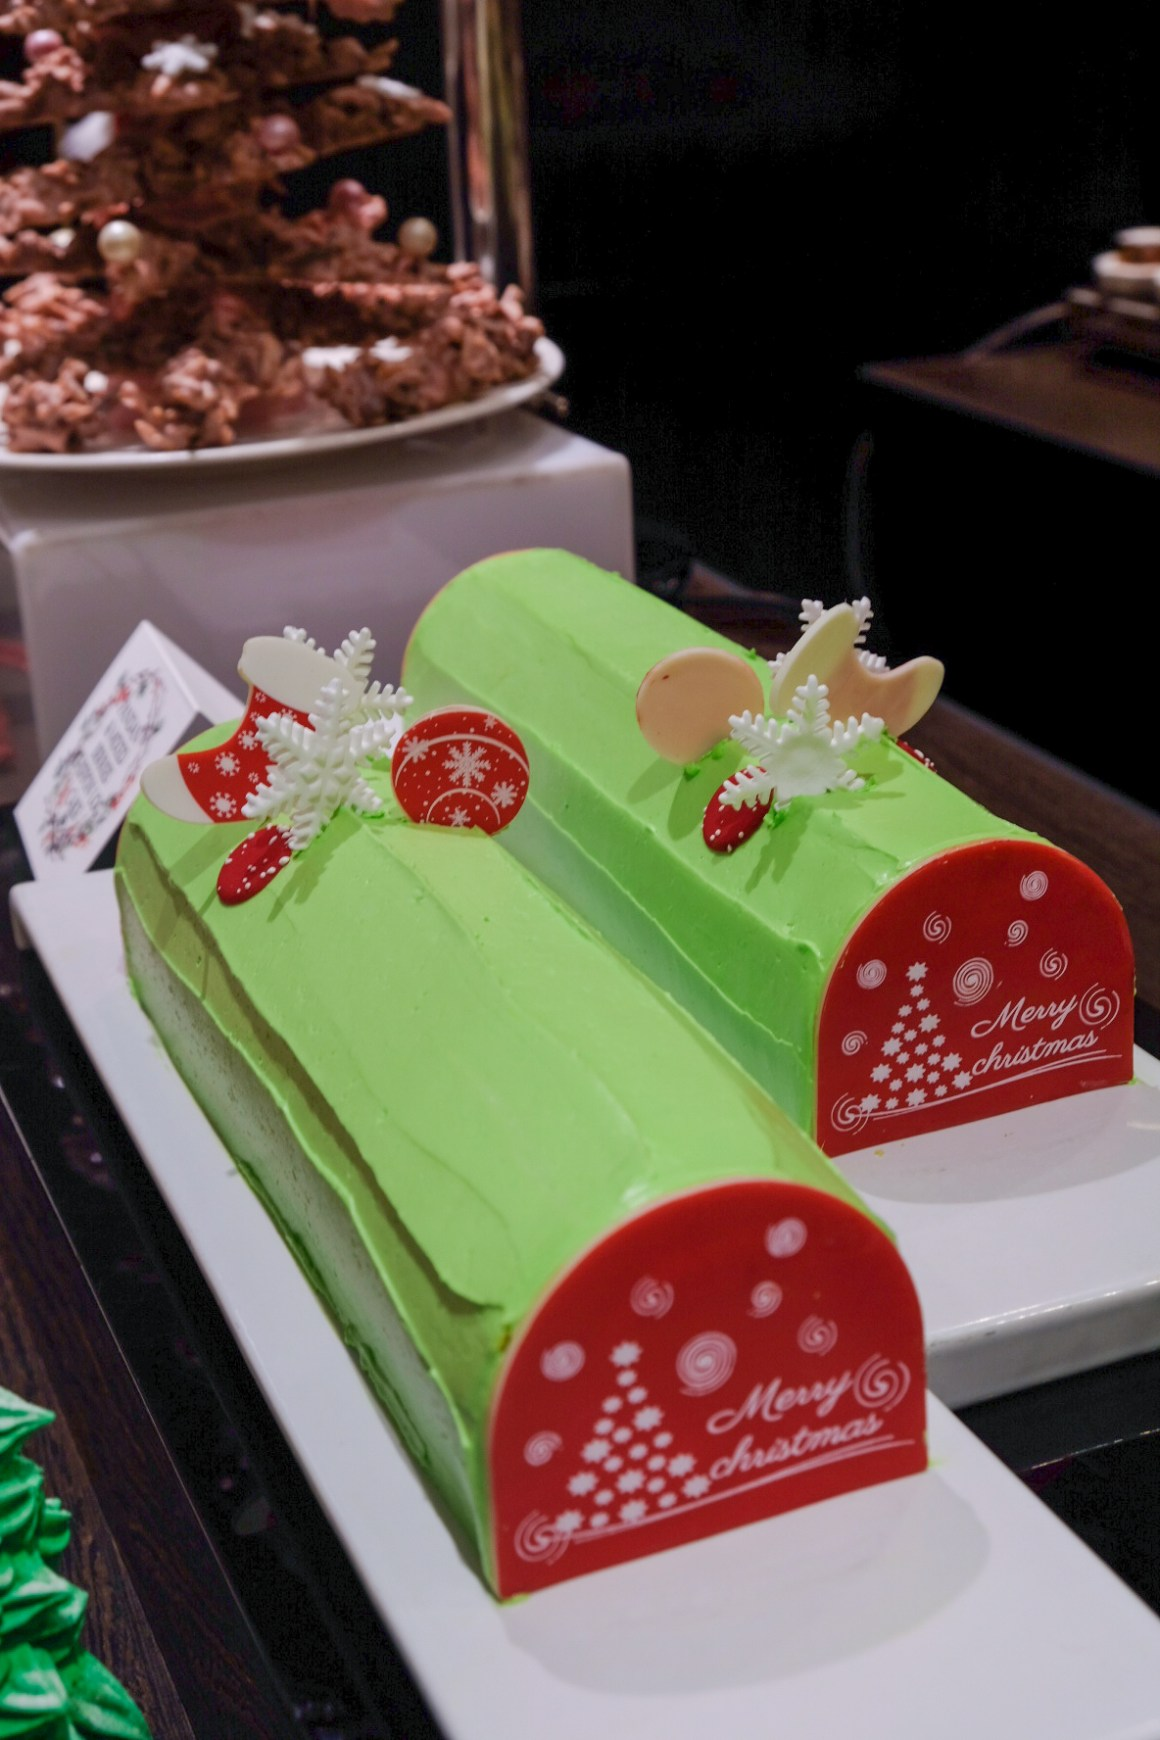 A Christmas To Remember At Singapore Marriott Tang Plaza Hotel - the Pandan & Mixed Berries Chiffon Log Cake (1kg, $68nett)